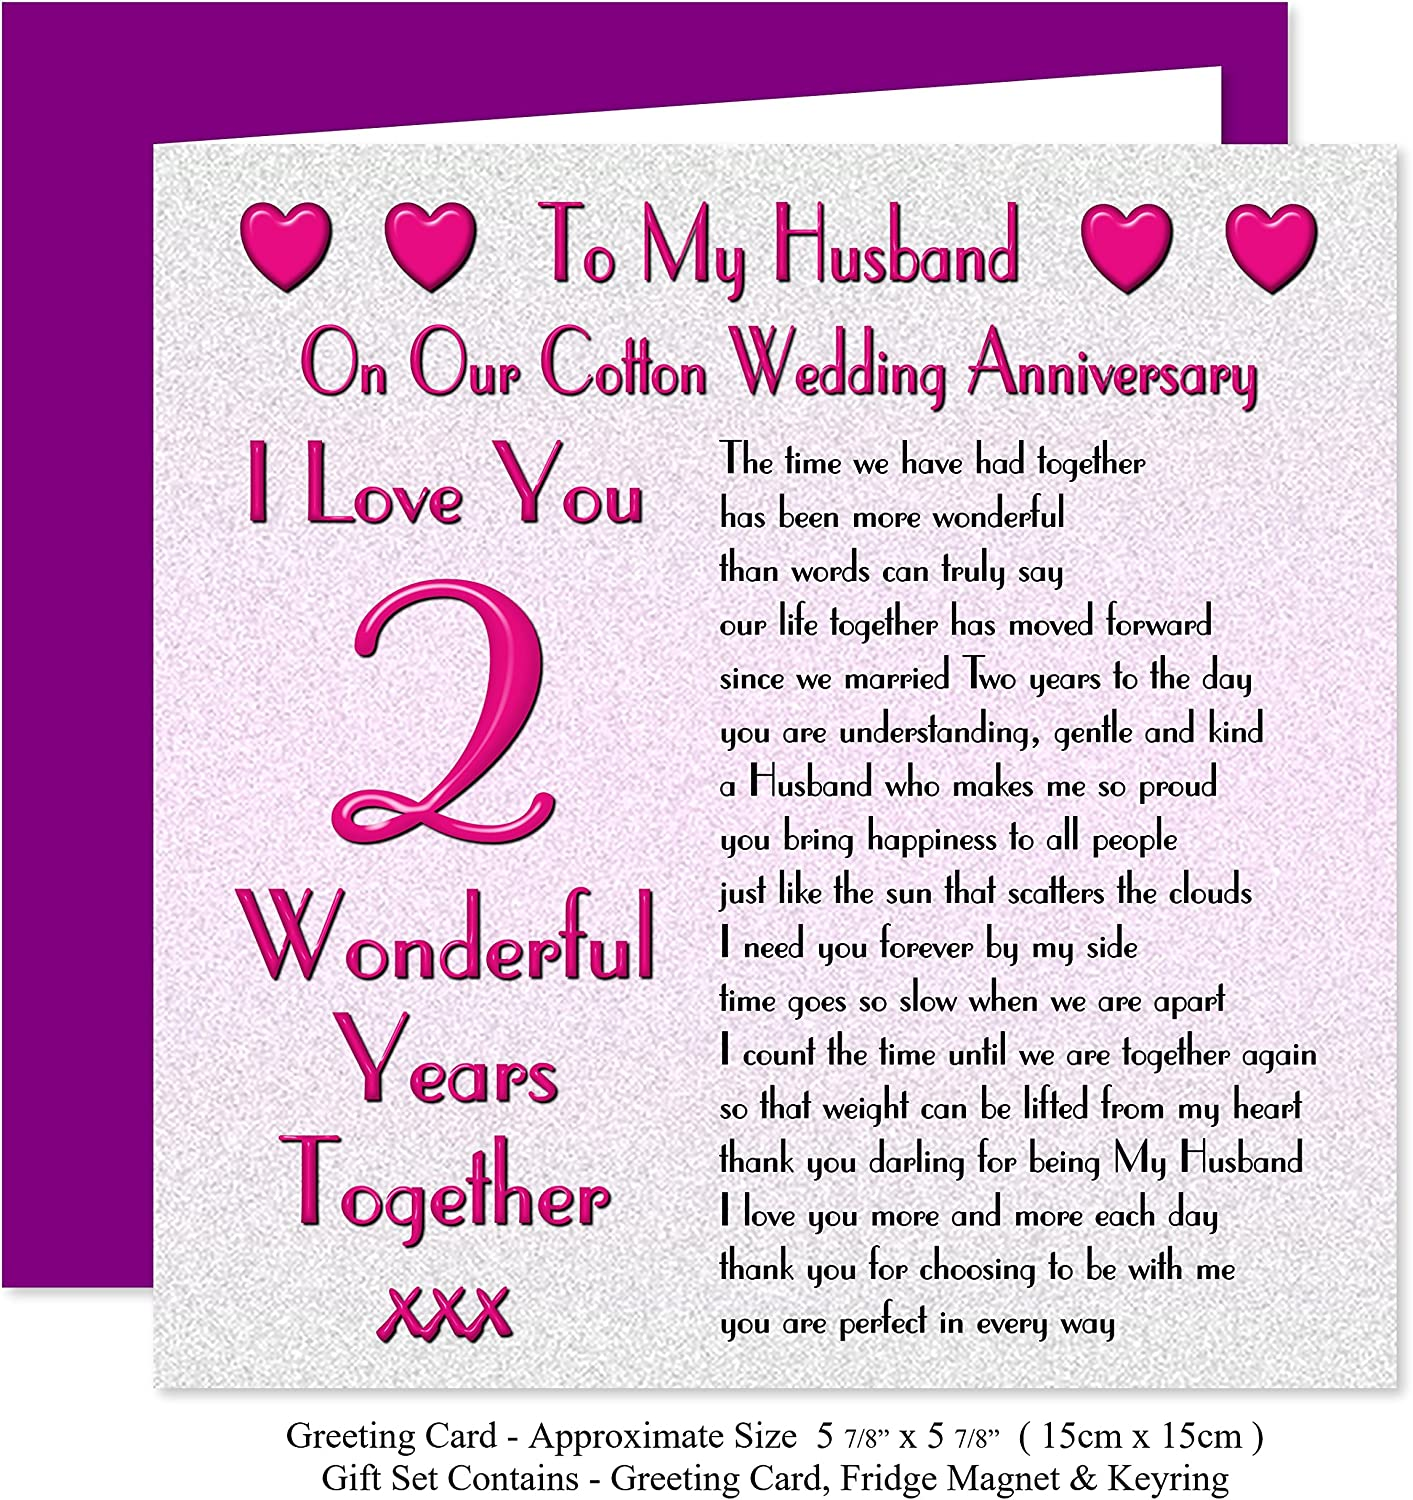 My Husband 2nd Wedding Anniversary Gift Set Card Keyring Fridge Magnet Present On Our Cotton Anniversary 2 Years Sentimental Verse I Love You Amazon Co Uk Office Products